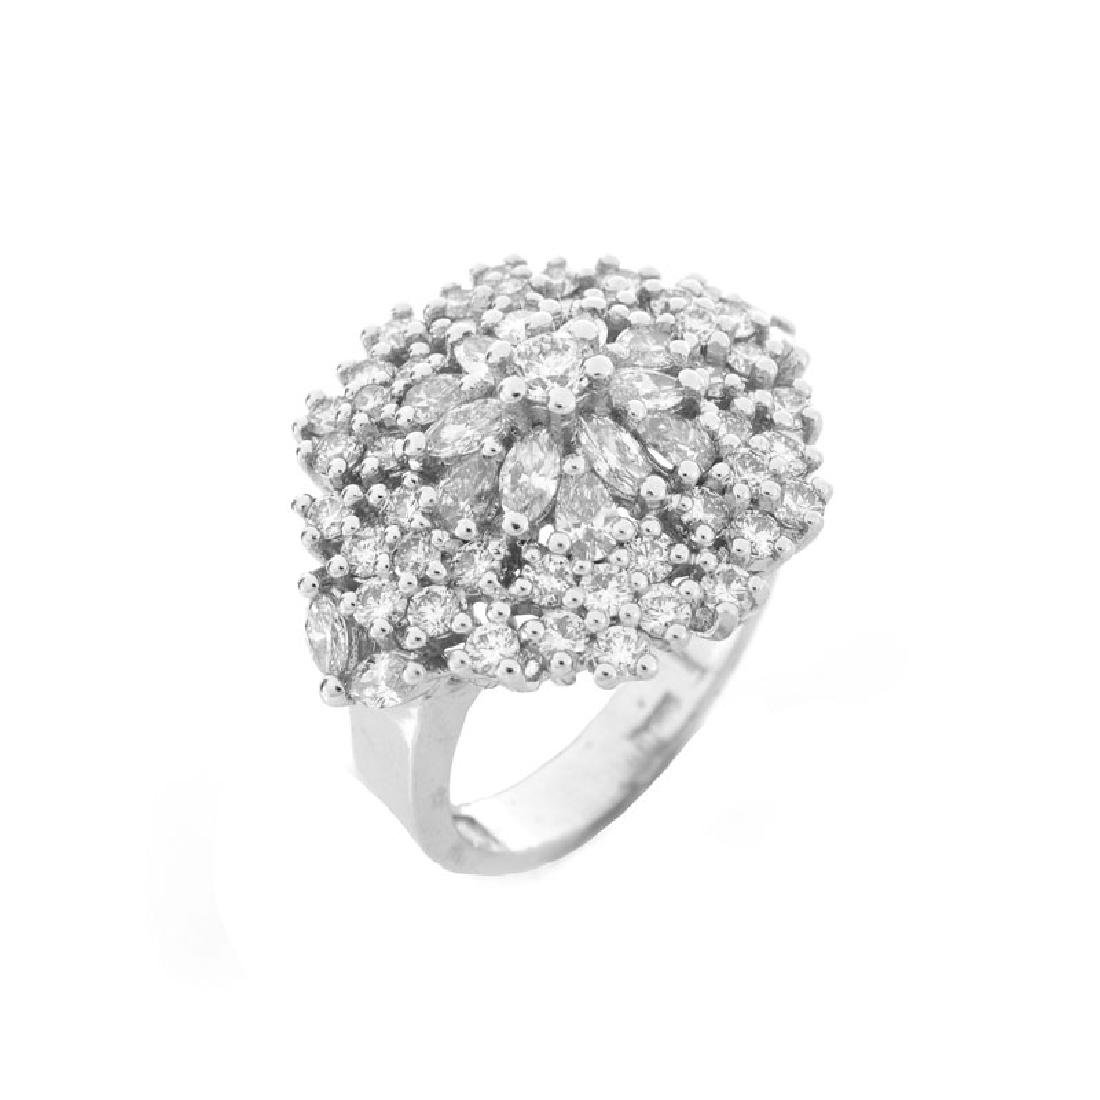 Contemporary Approx. 2.54 Carat TW Marquise, Pear and